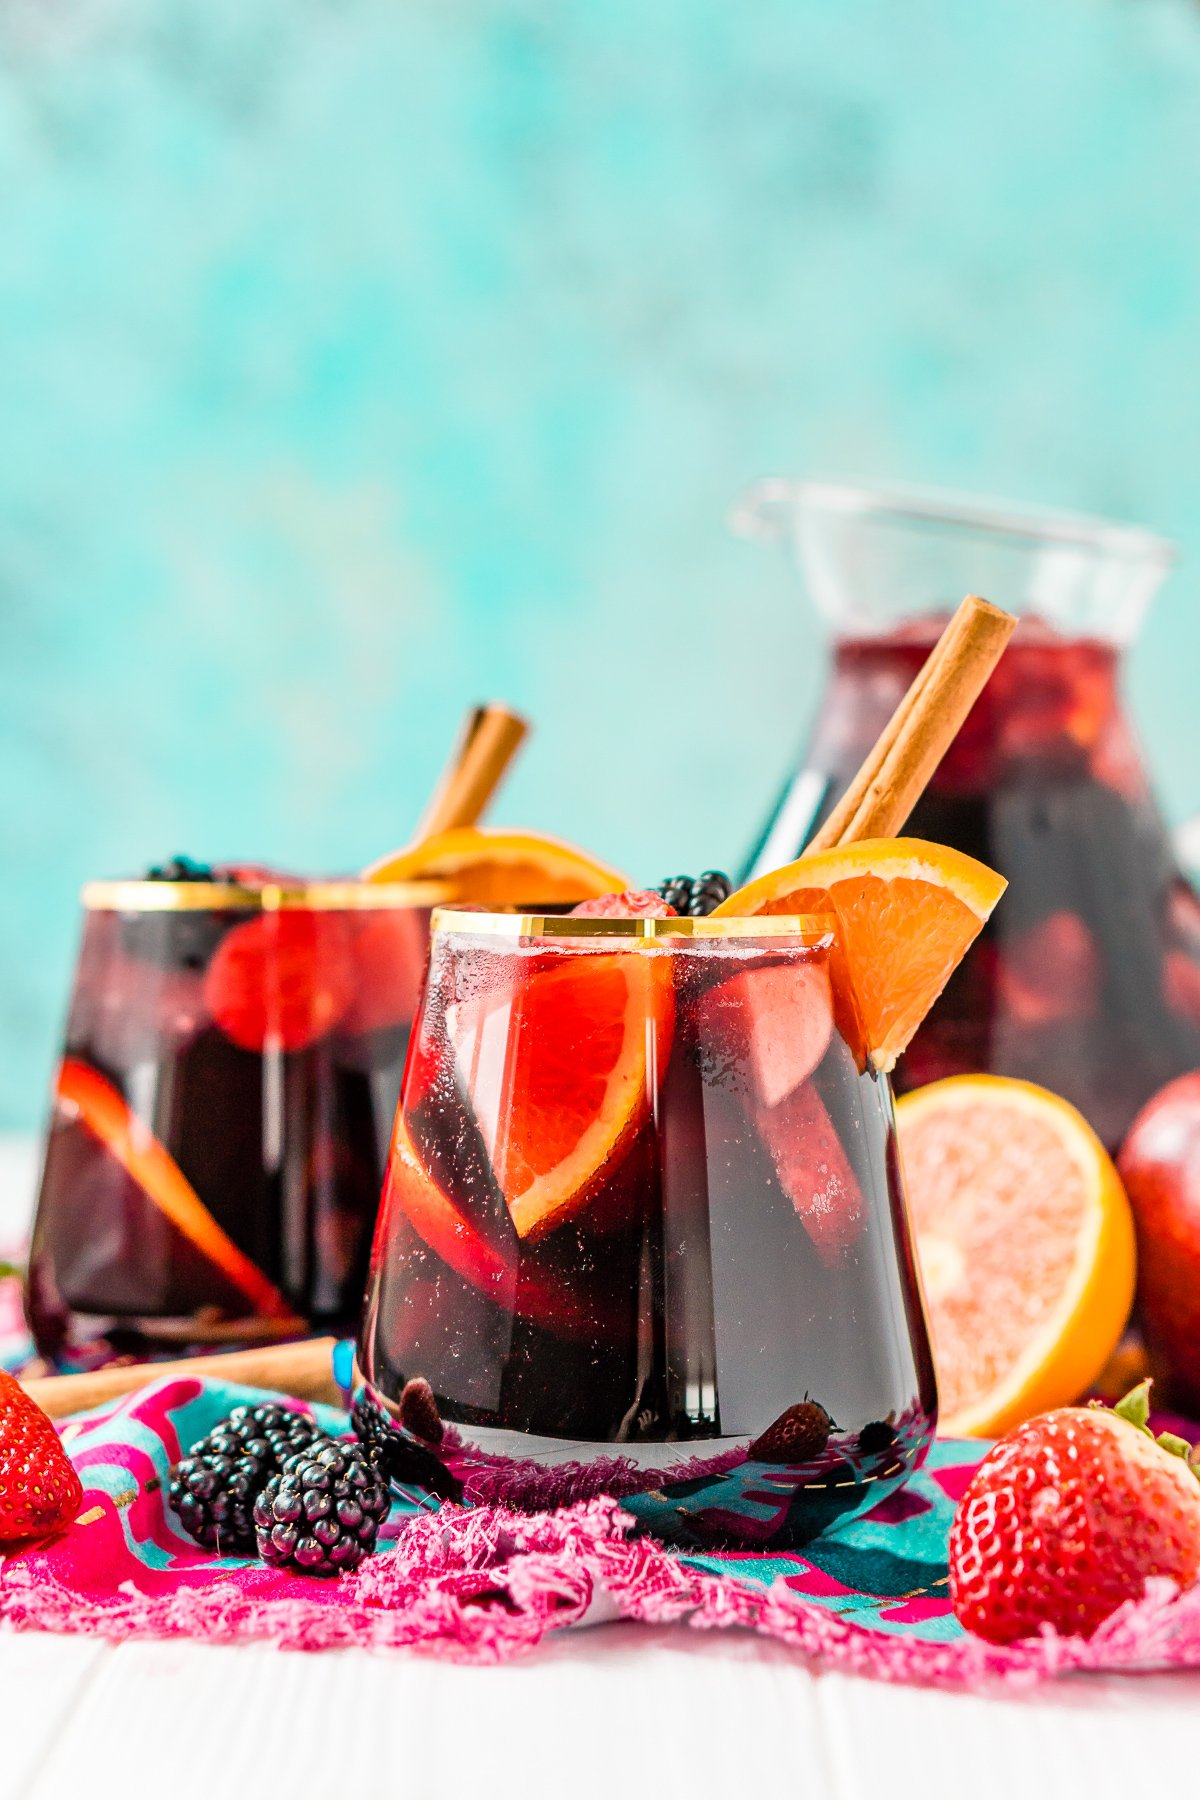 Glasses of red wine sangria in front of a full pitcher. Fresh fruit scattered around glasses.